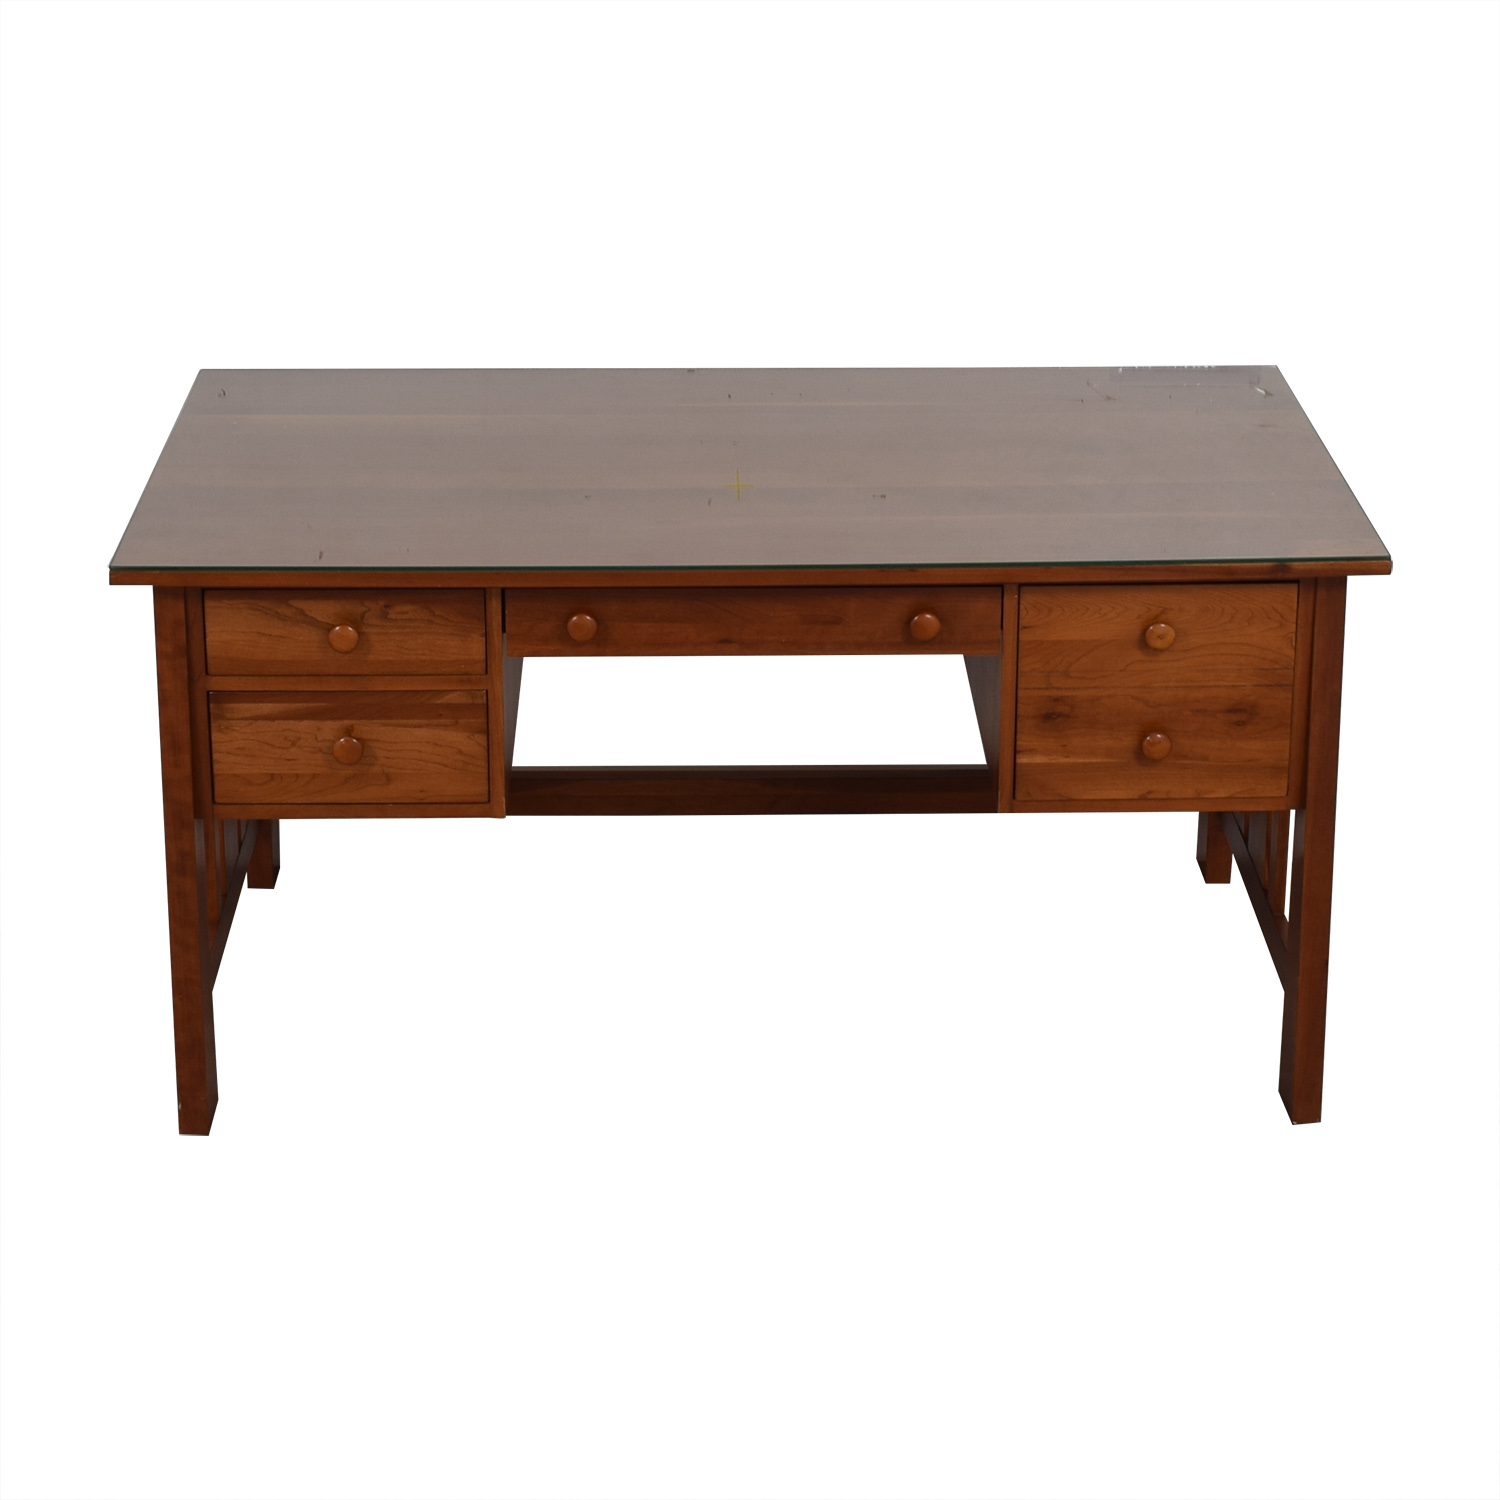 Ethan Allen Cherry Wood Mission Desk sale